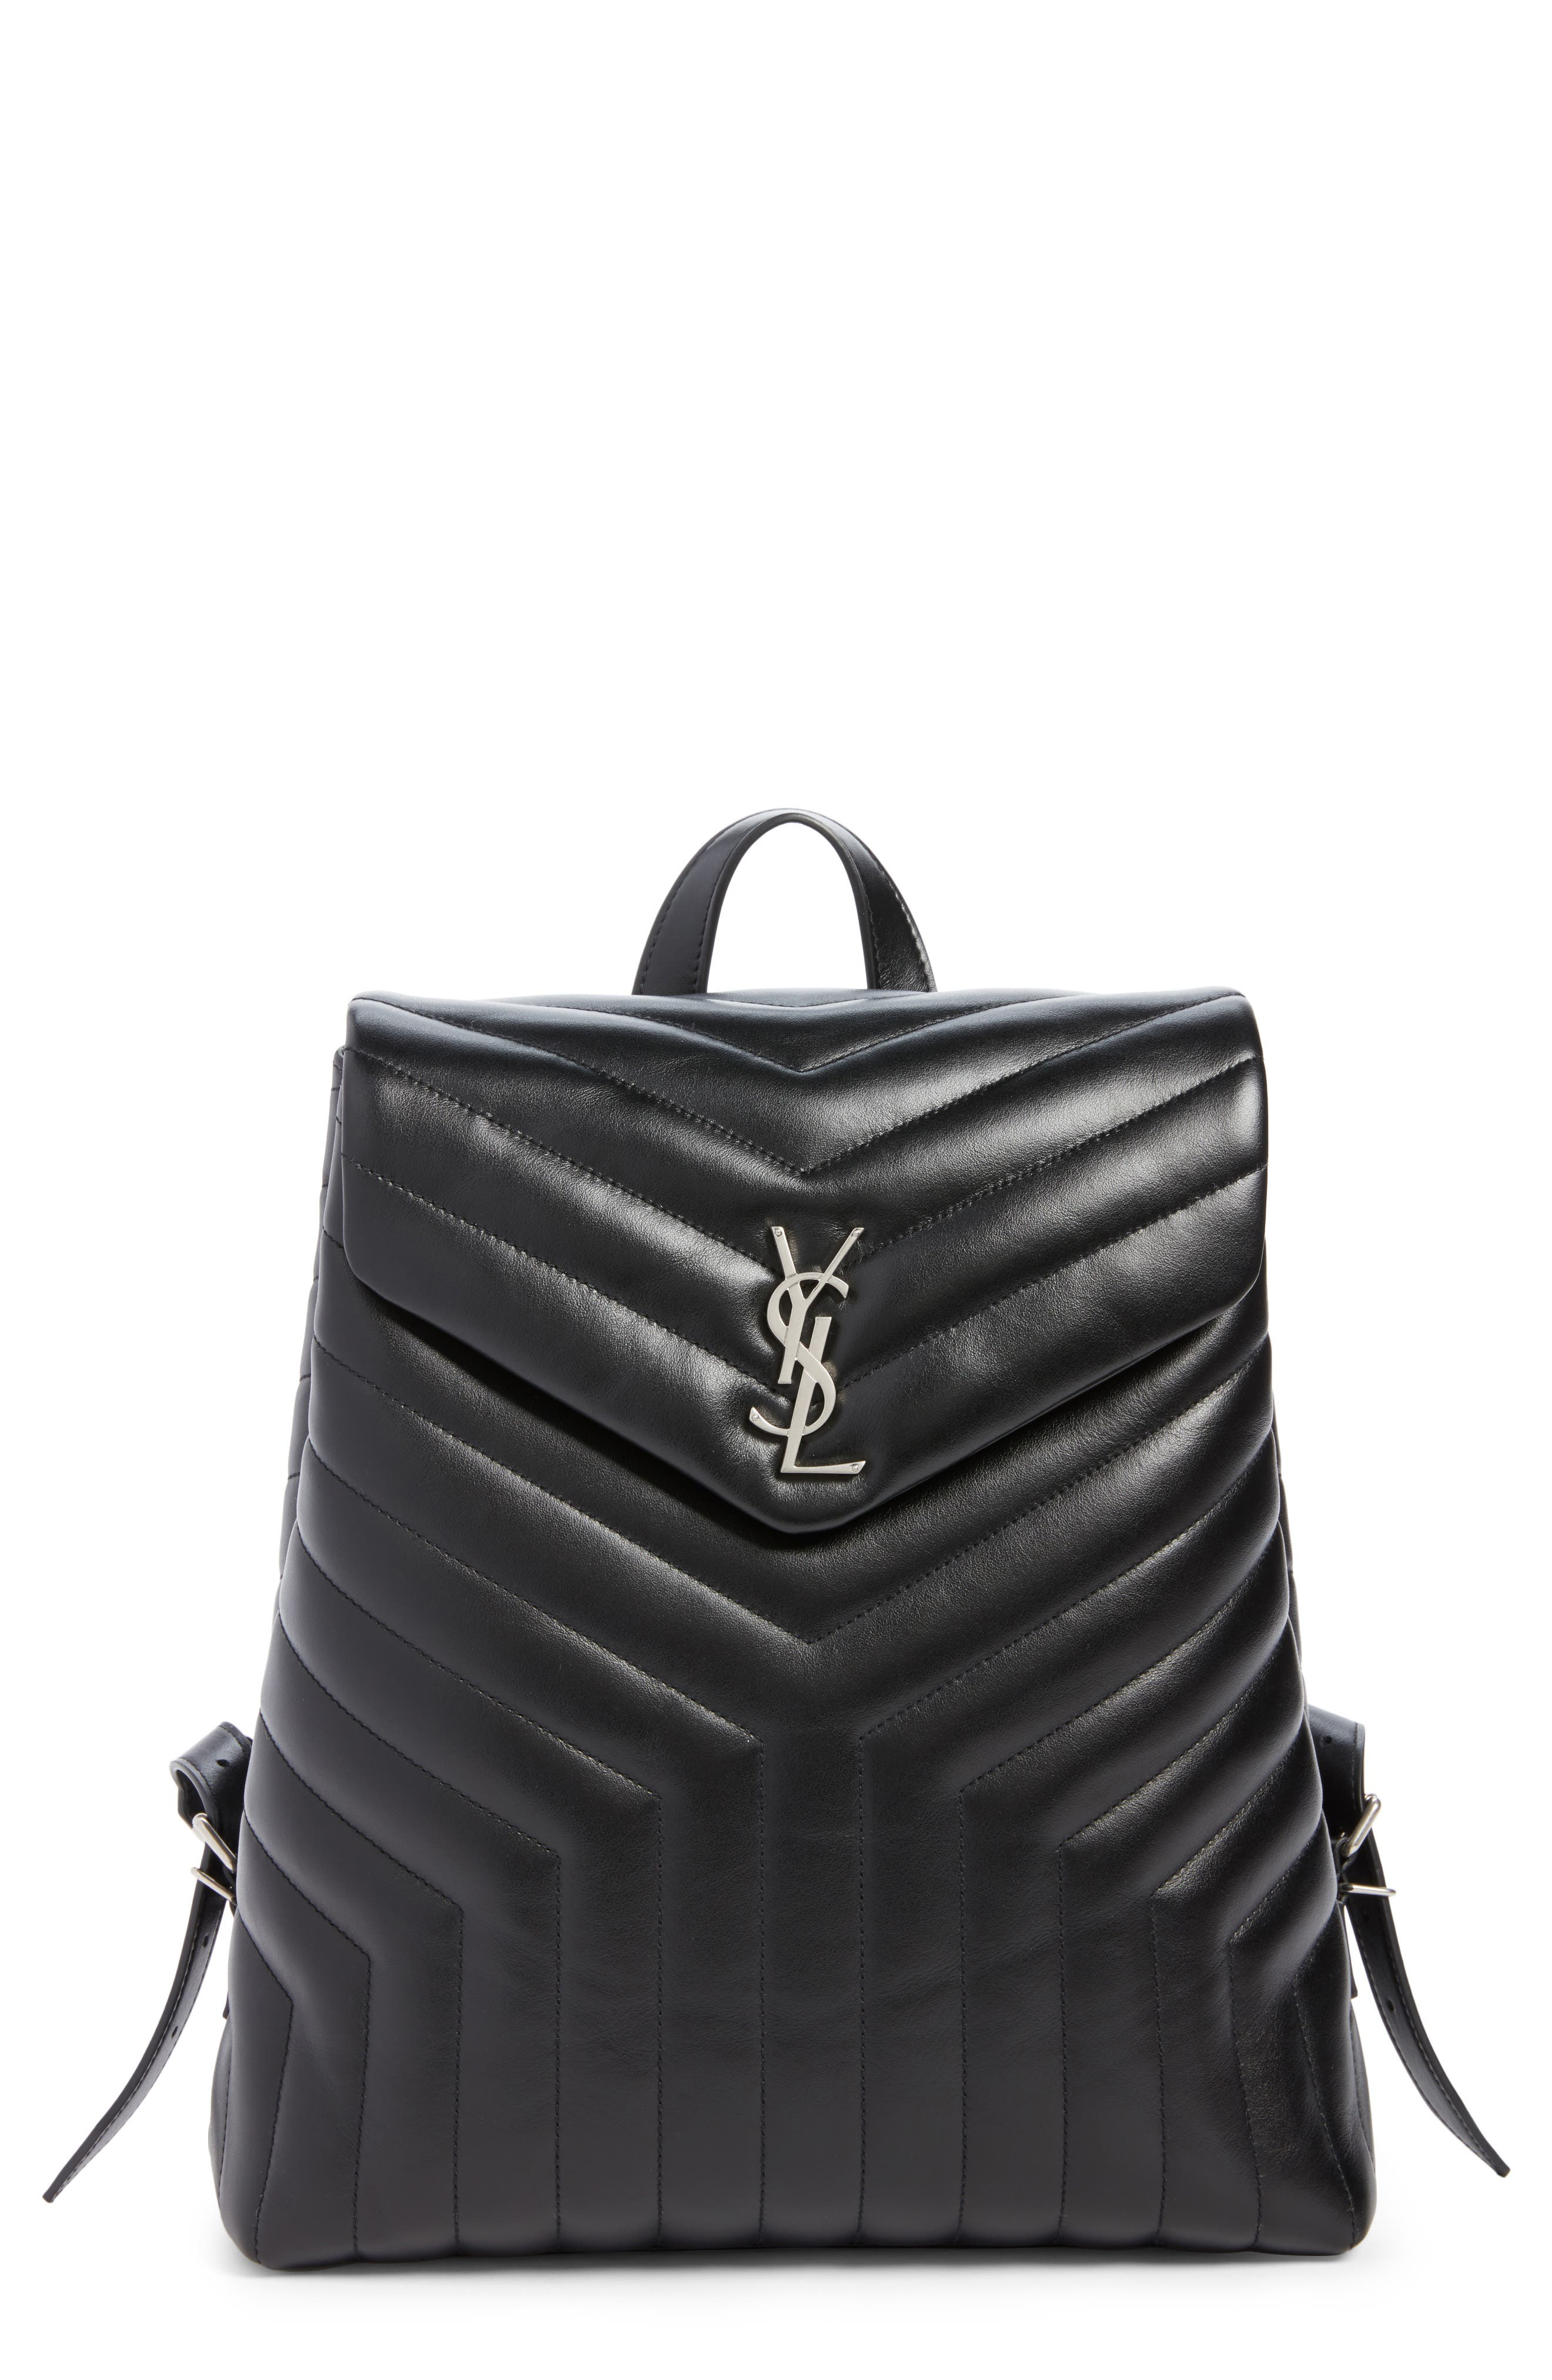 Medium Loulou Calfskin Leather Backpack,                             Main thumbnail 1, color,                             Black